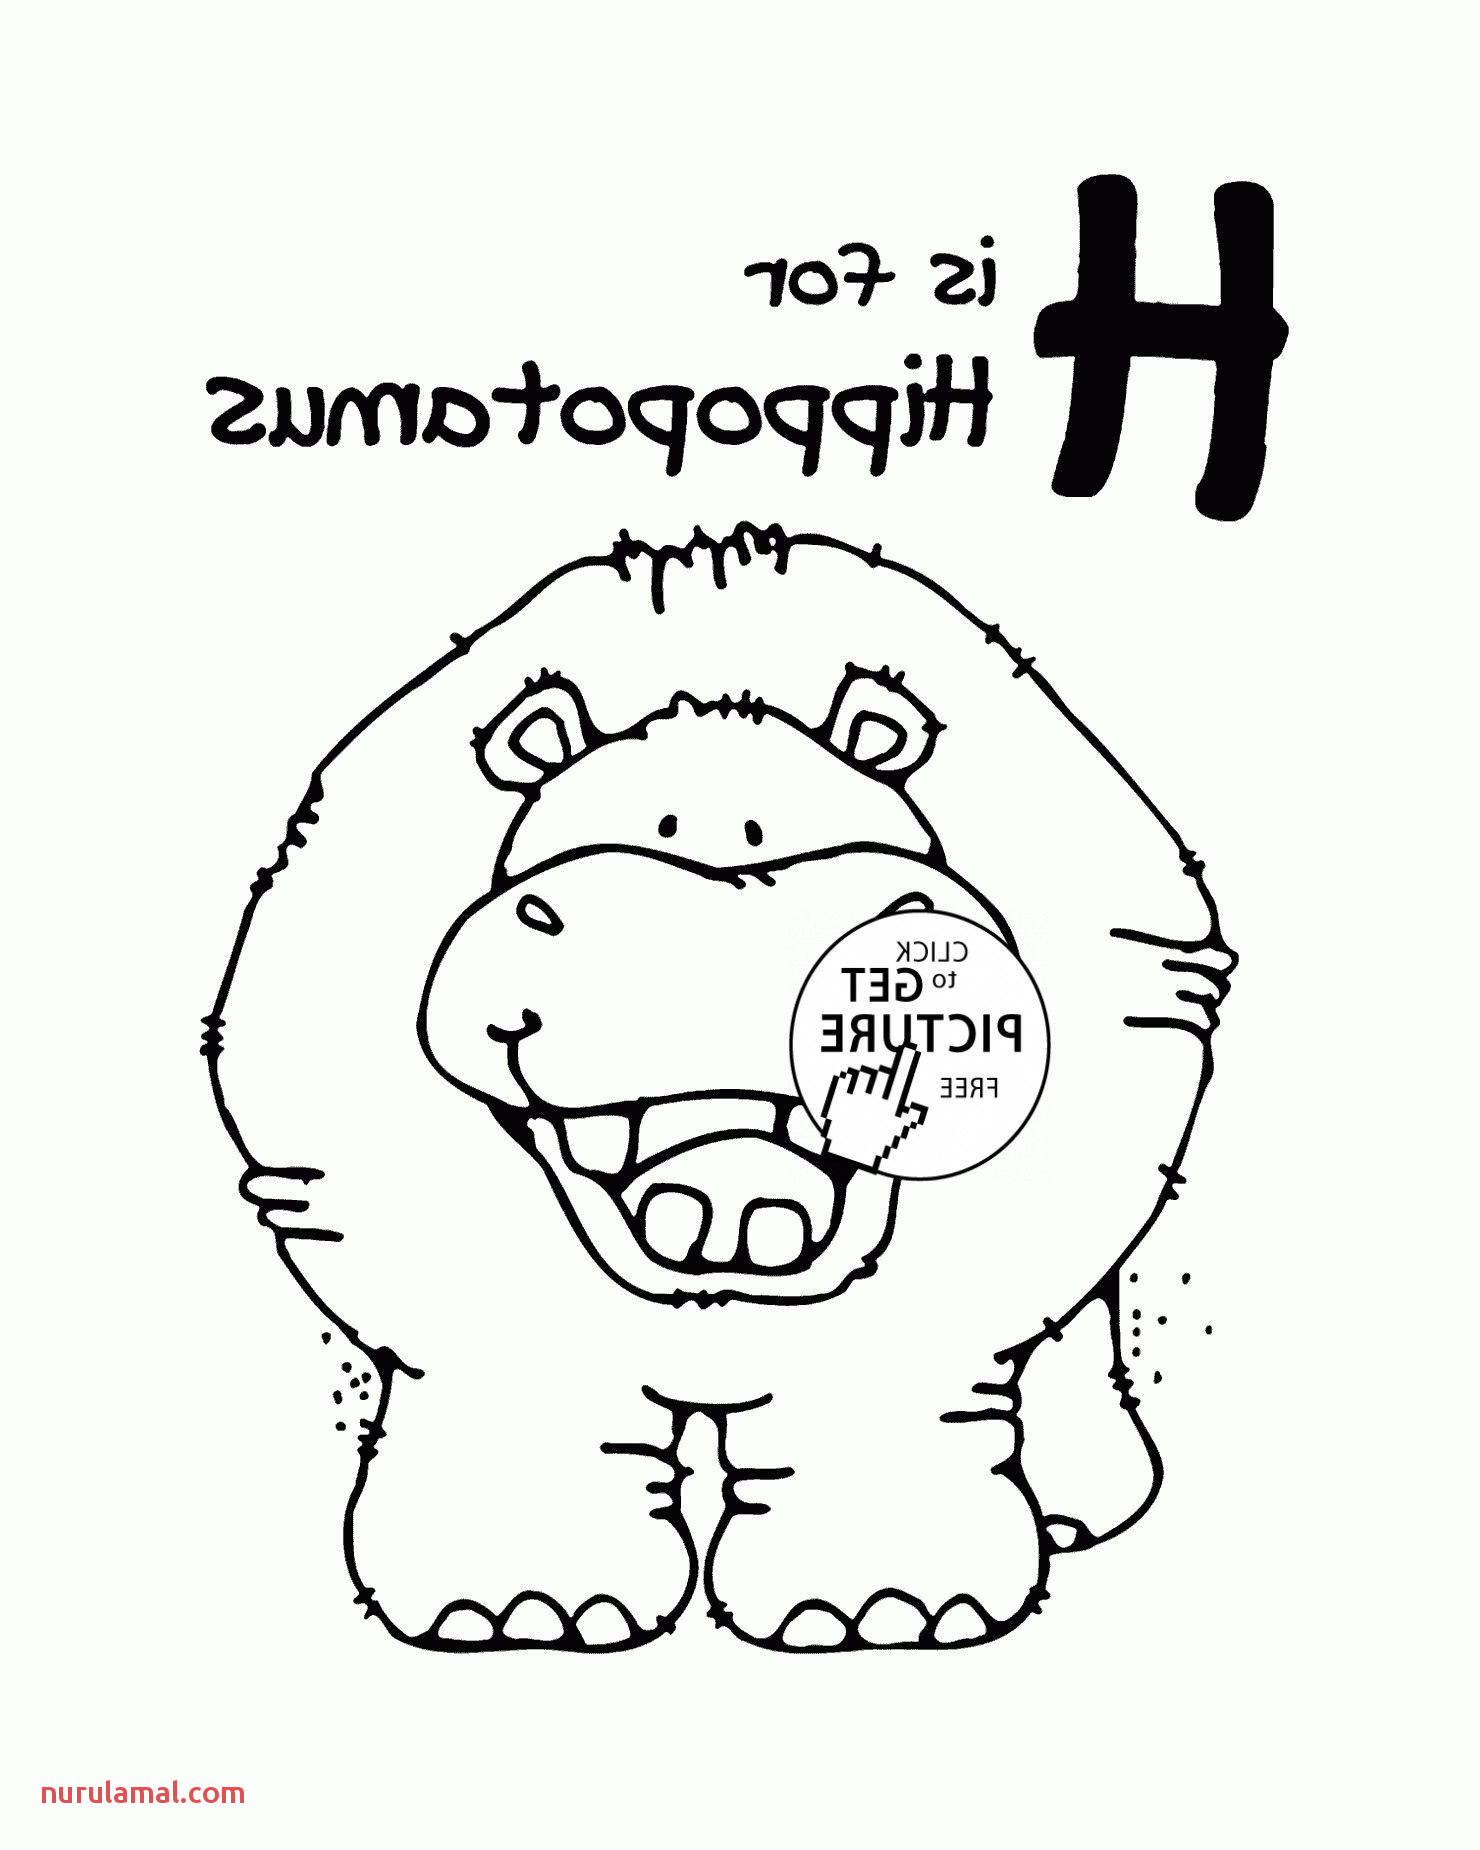 high resolution coloring book images best of photos luxury preschool letters coloring pages ucandate of high resolution coloring book images